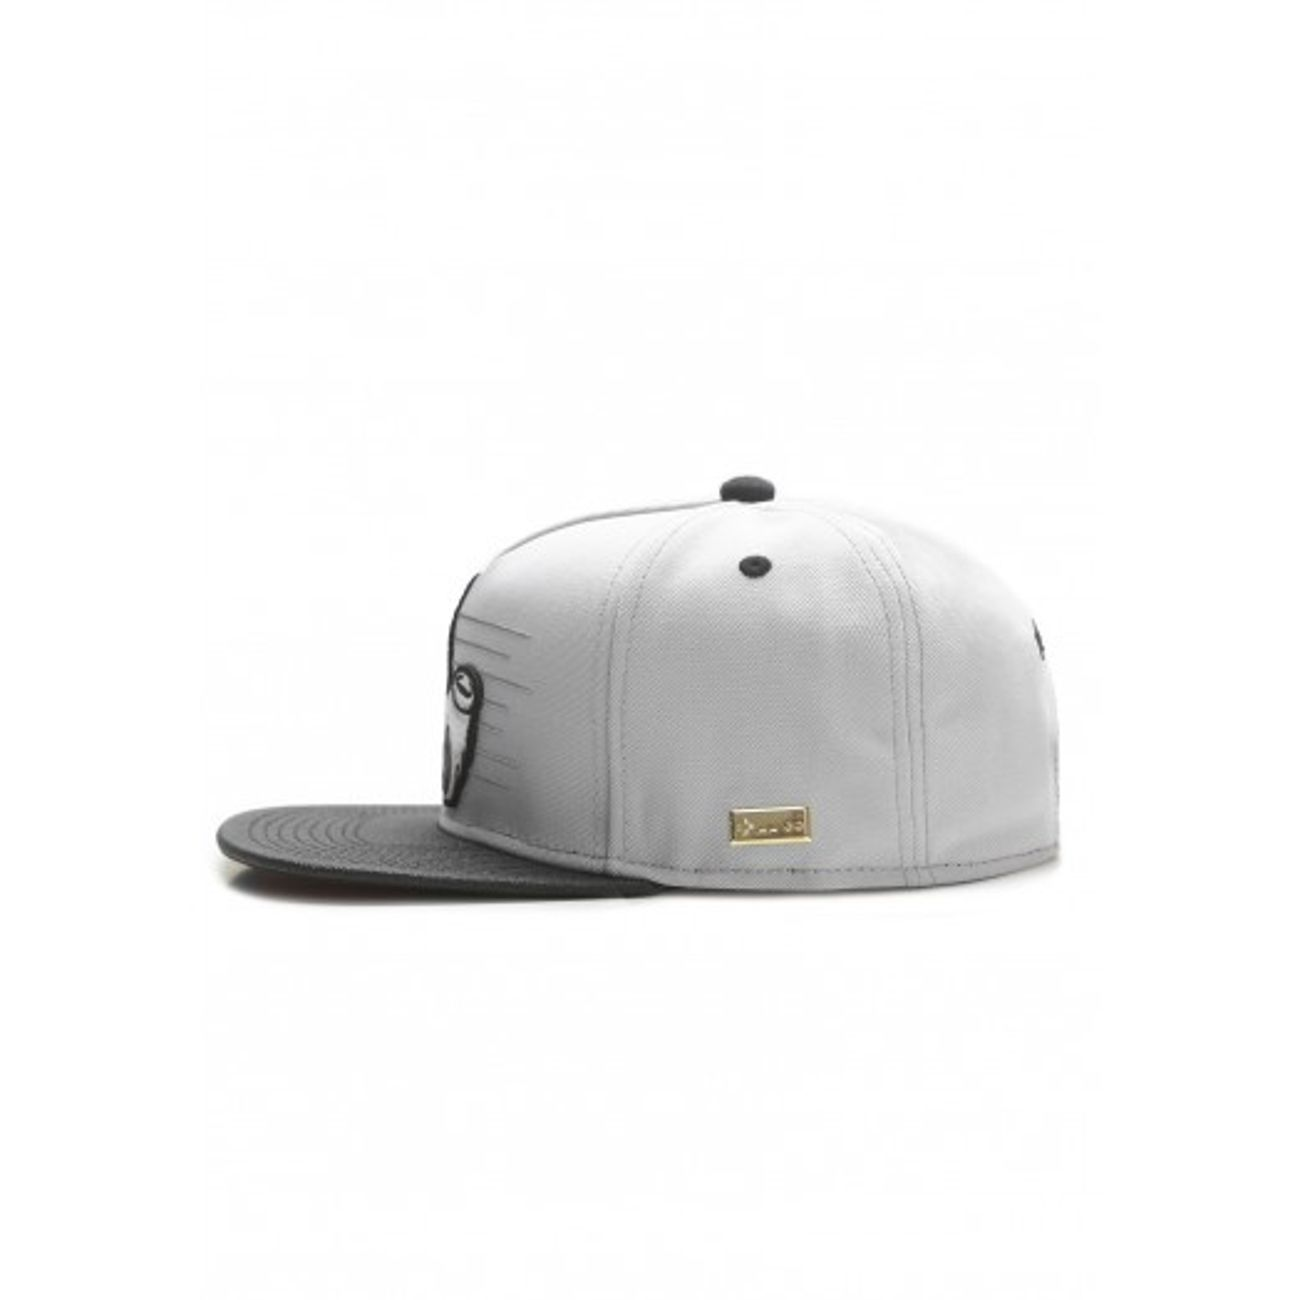 Adulte Casquette Classics School ModeLifestyle Old Urban e2HIWDbE9Y